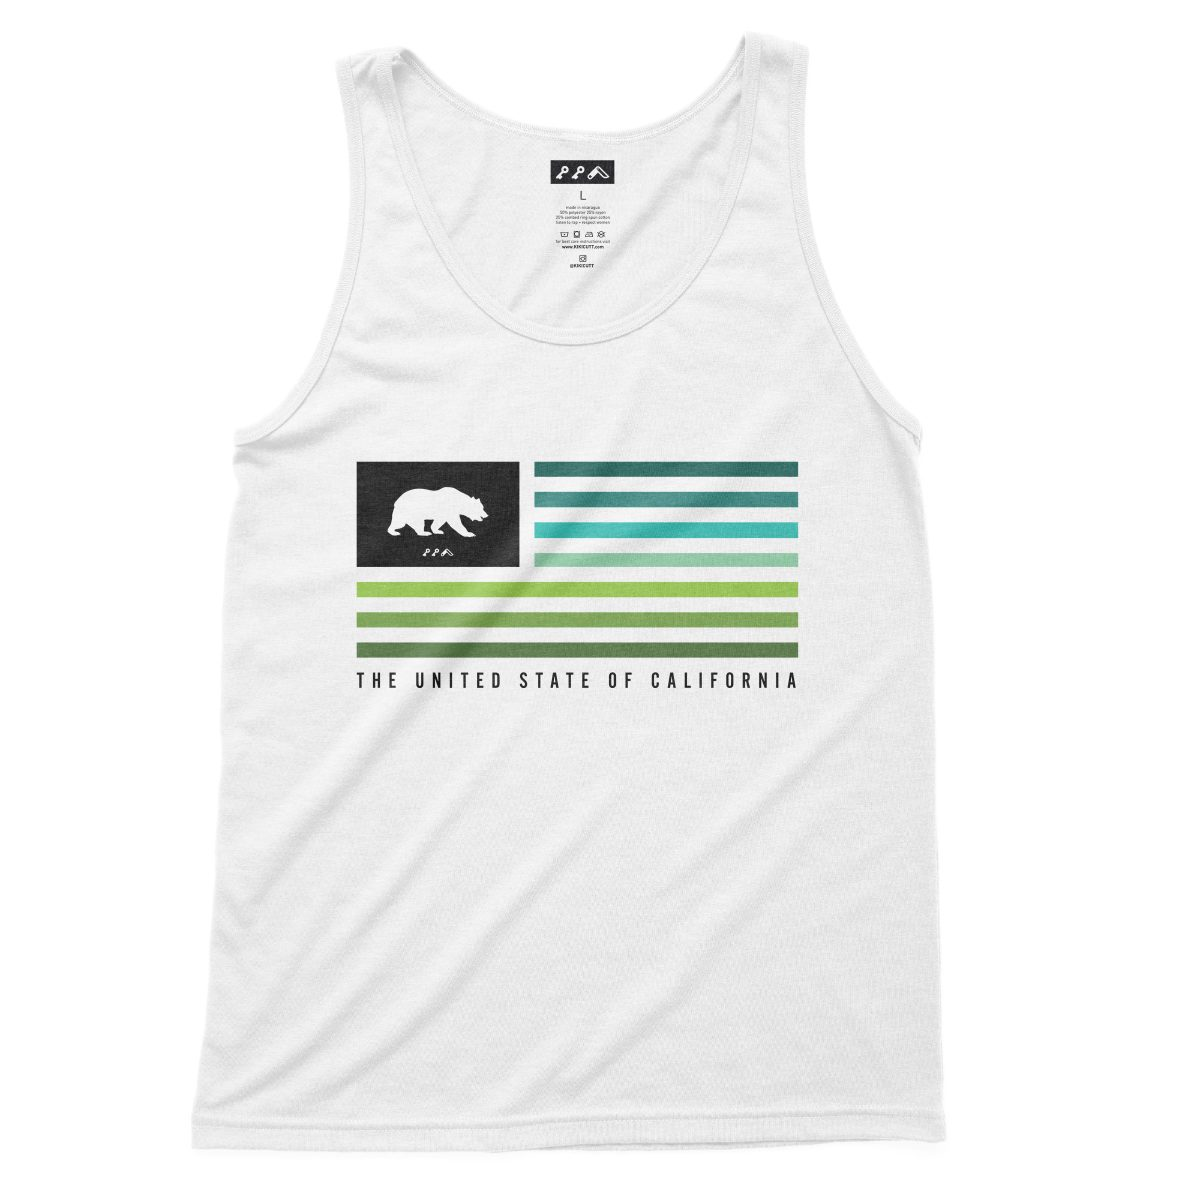 UNITED STATE OF CALIFORNIA equal rights cali beach tank tops in white